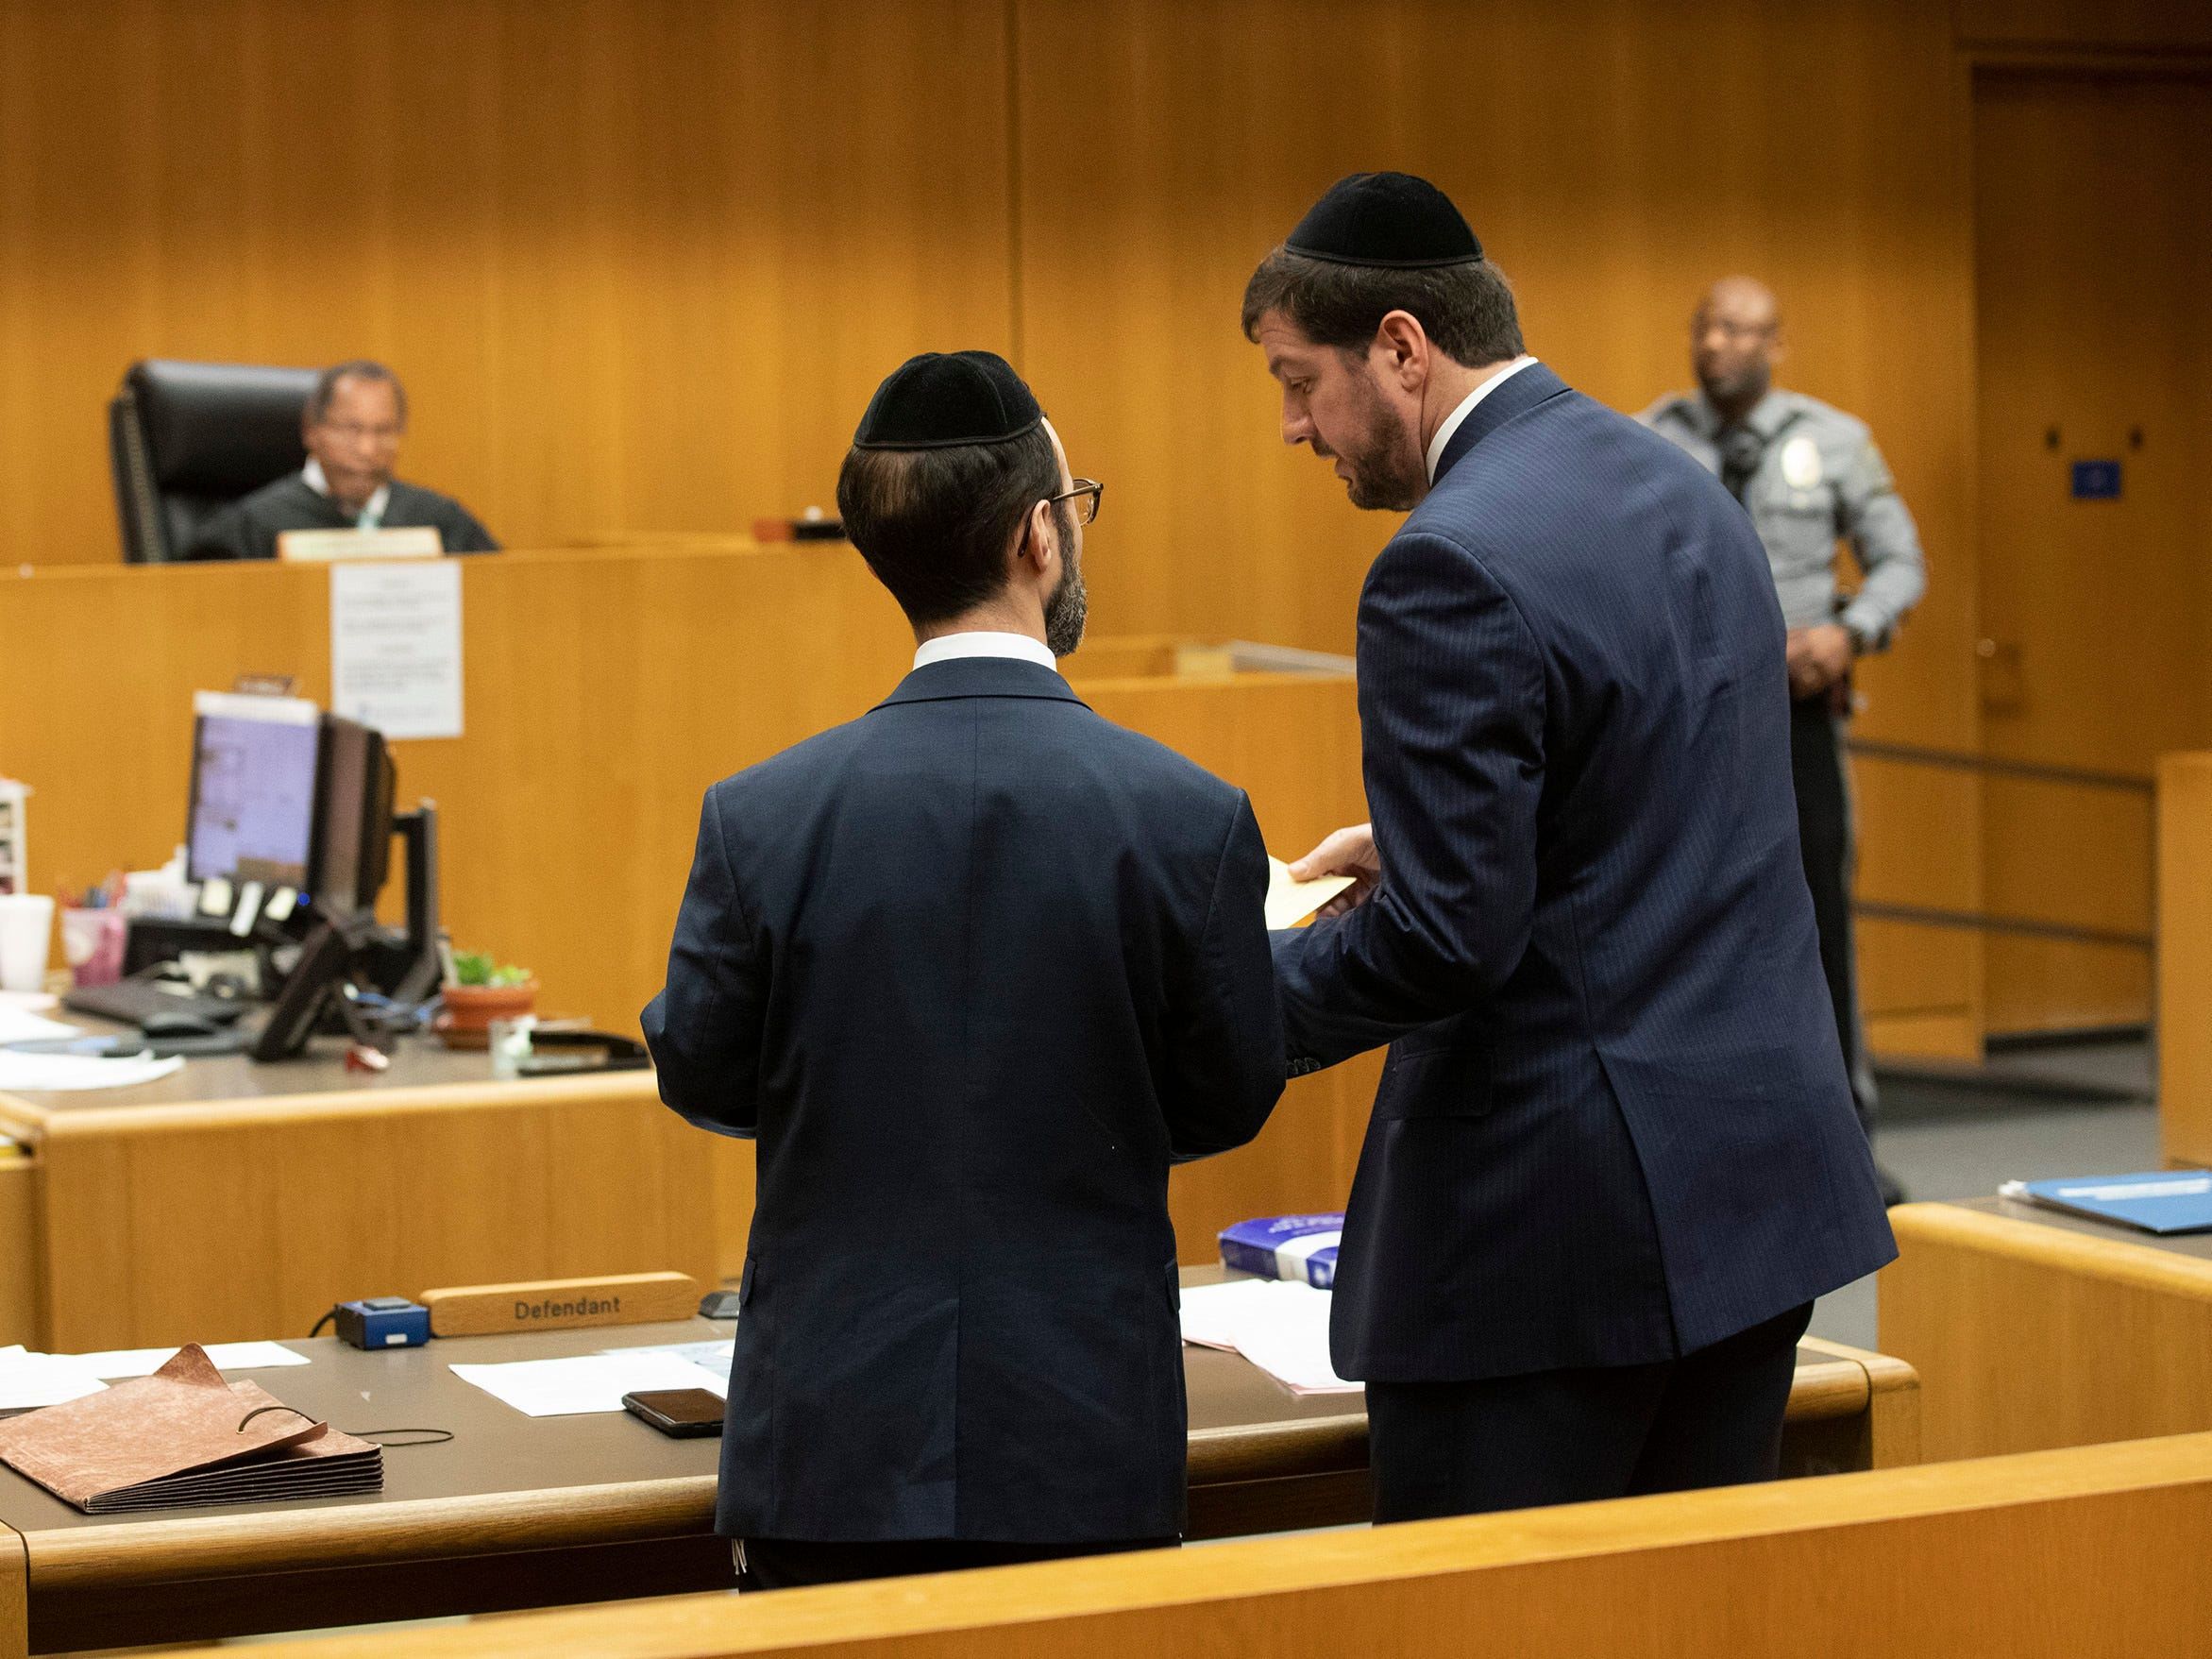 Yisroel Merkin. The first four plea deals in the Lakewood Welfare Fraud cases were settled in front of Judge Wendel Daniels in Ocean County Court in Toms River on December 5, 2018. Twenty Six people were arrested in the raids in 2017.